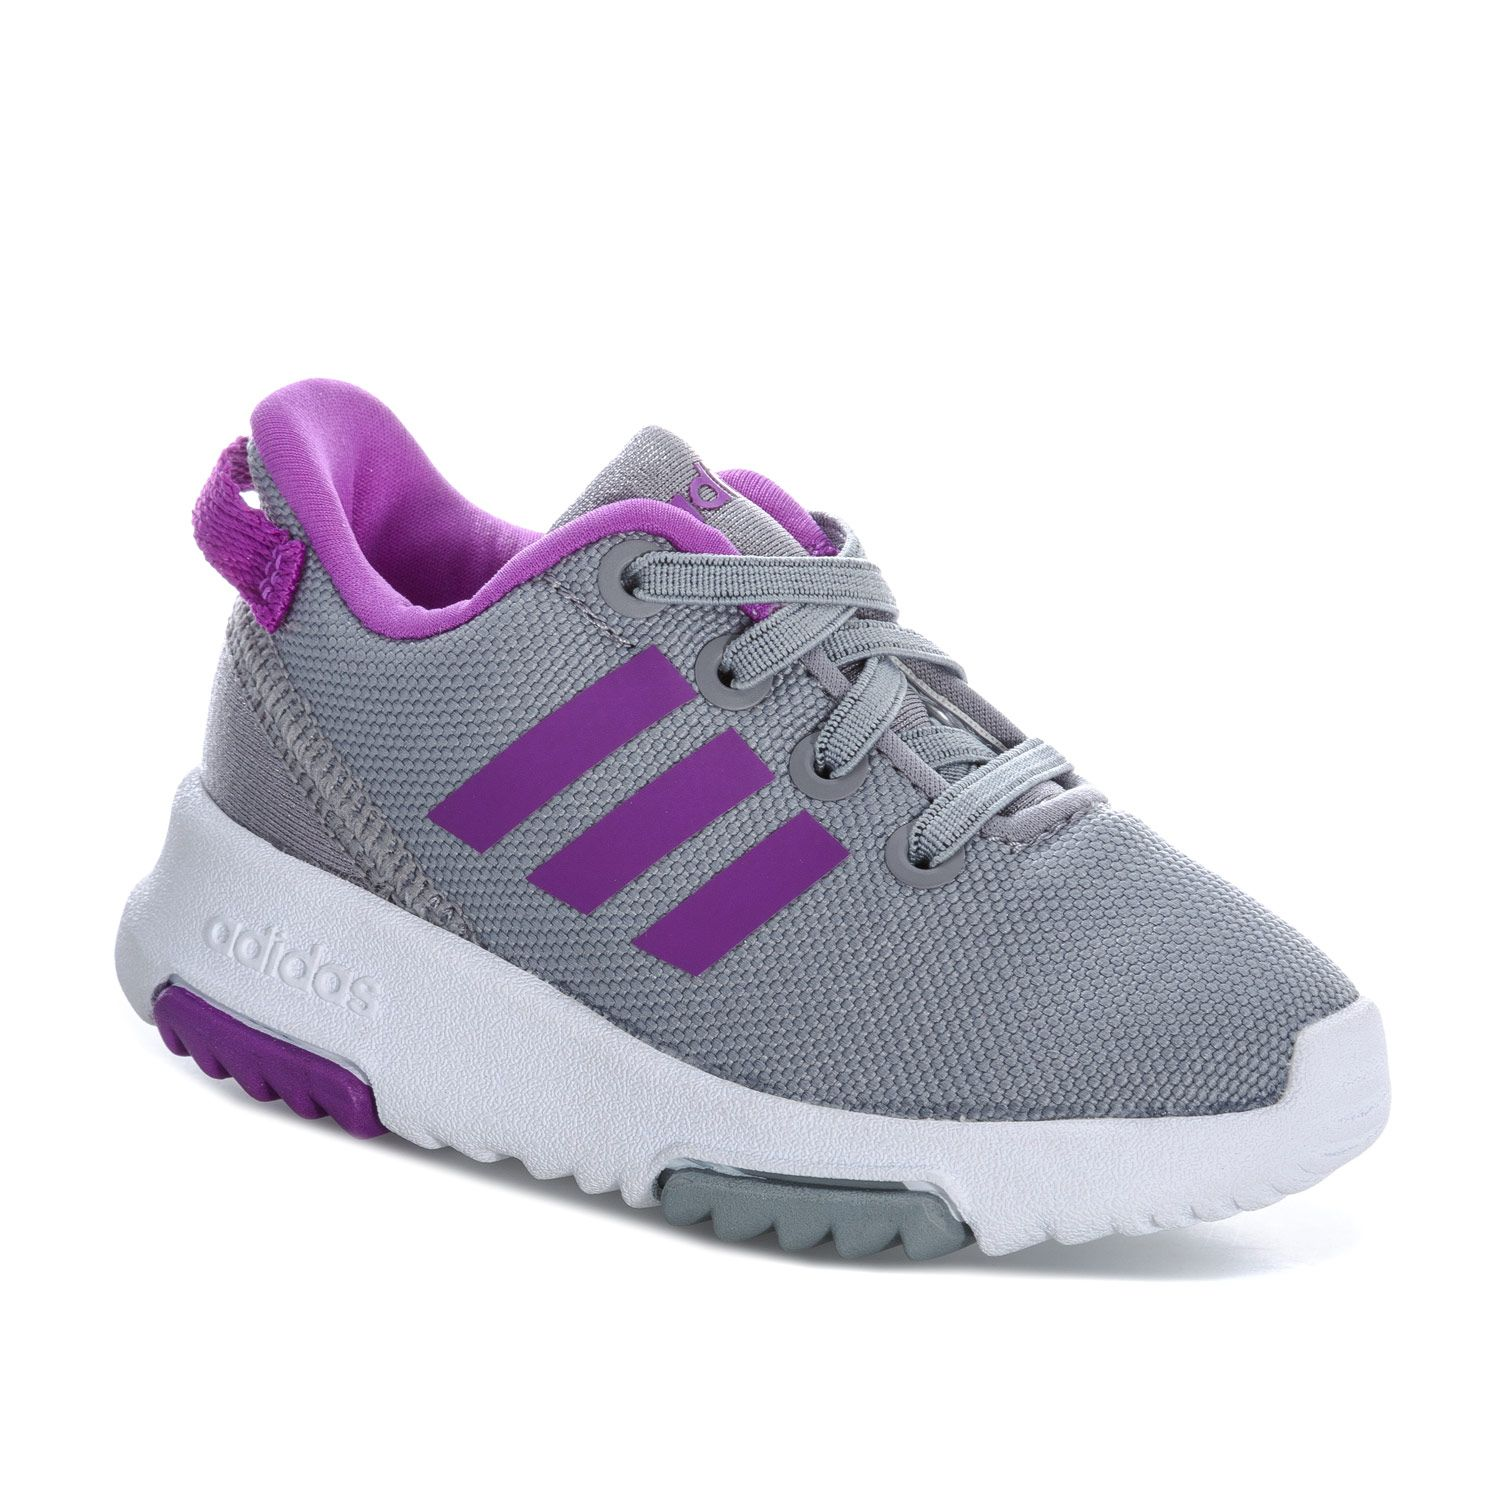 3d9fa89eb195 Buy adidas performance Infant Girls Racer Trainers in Grey